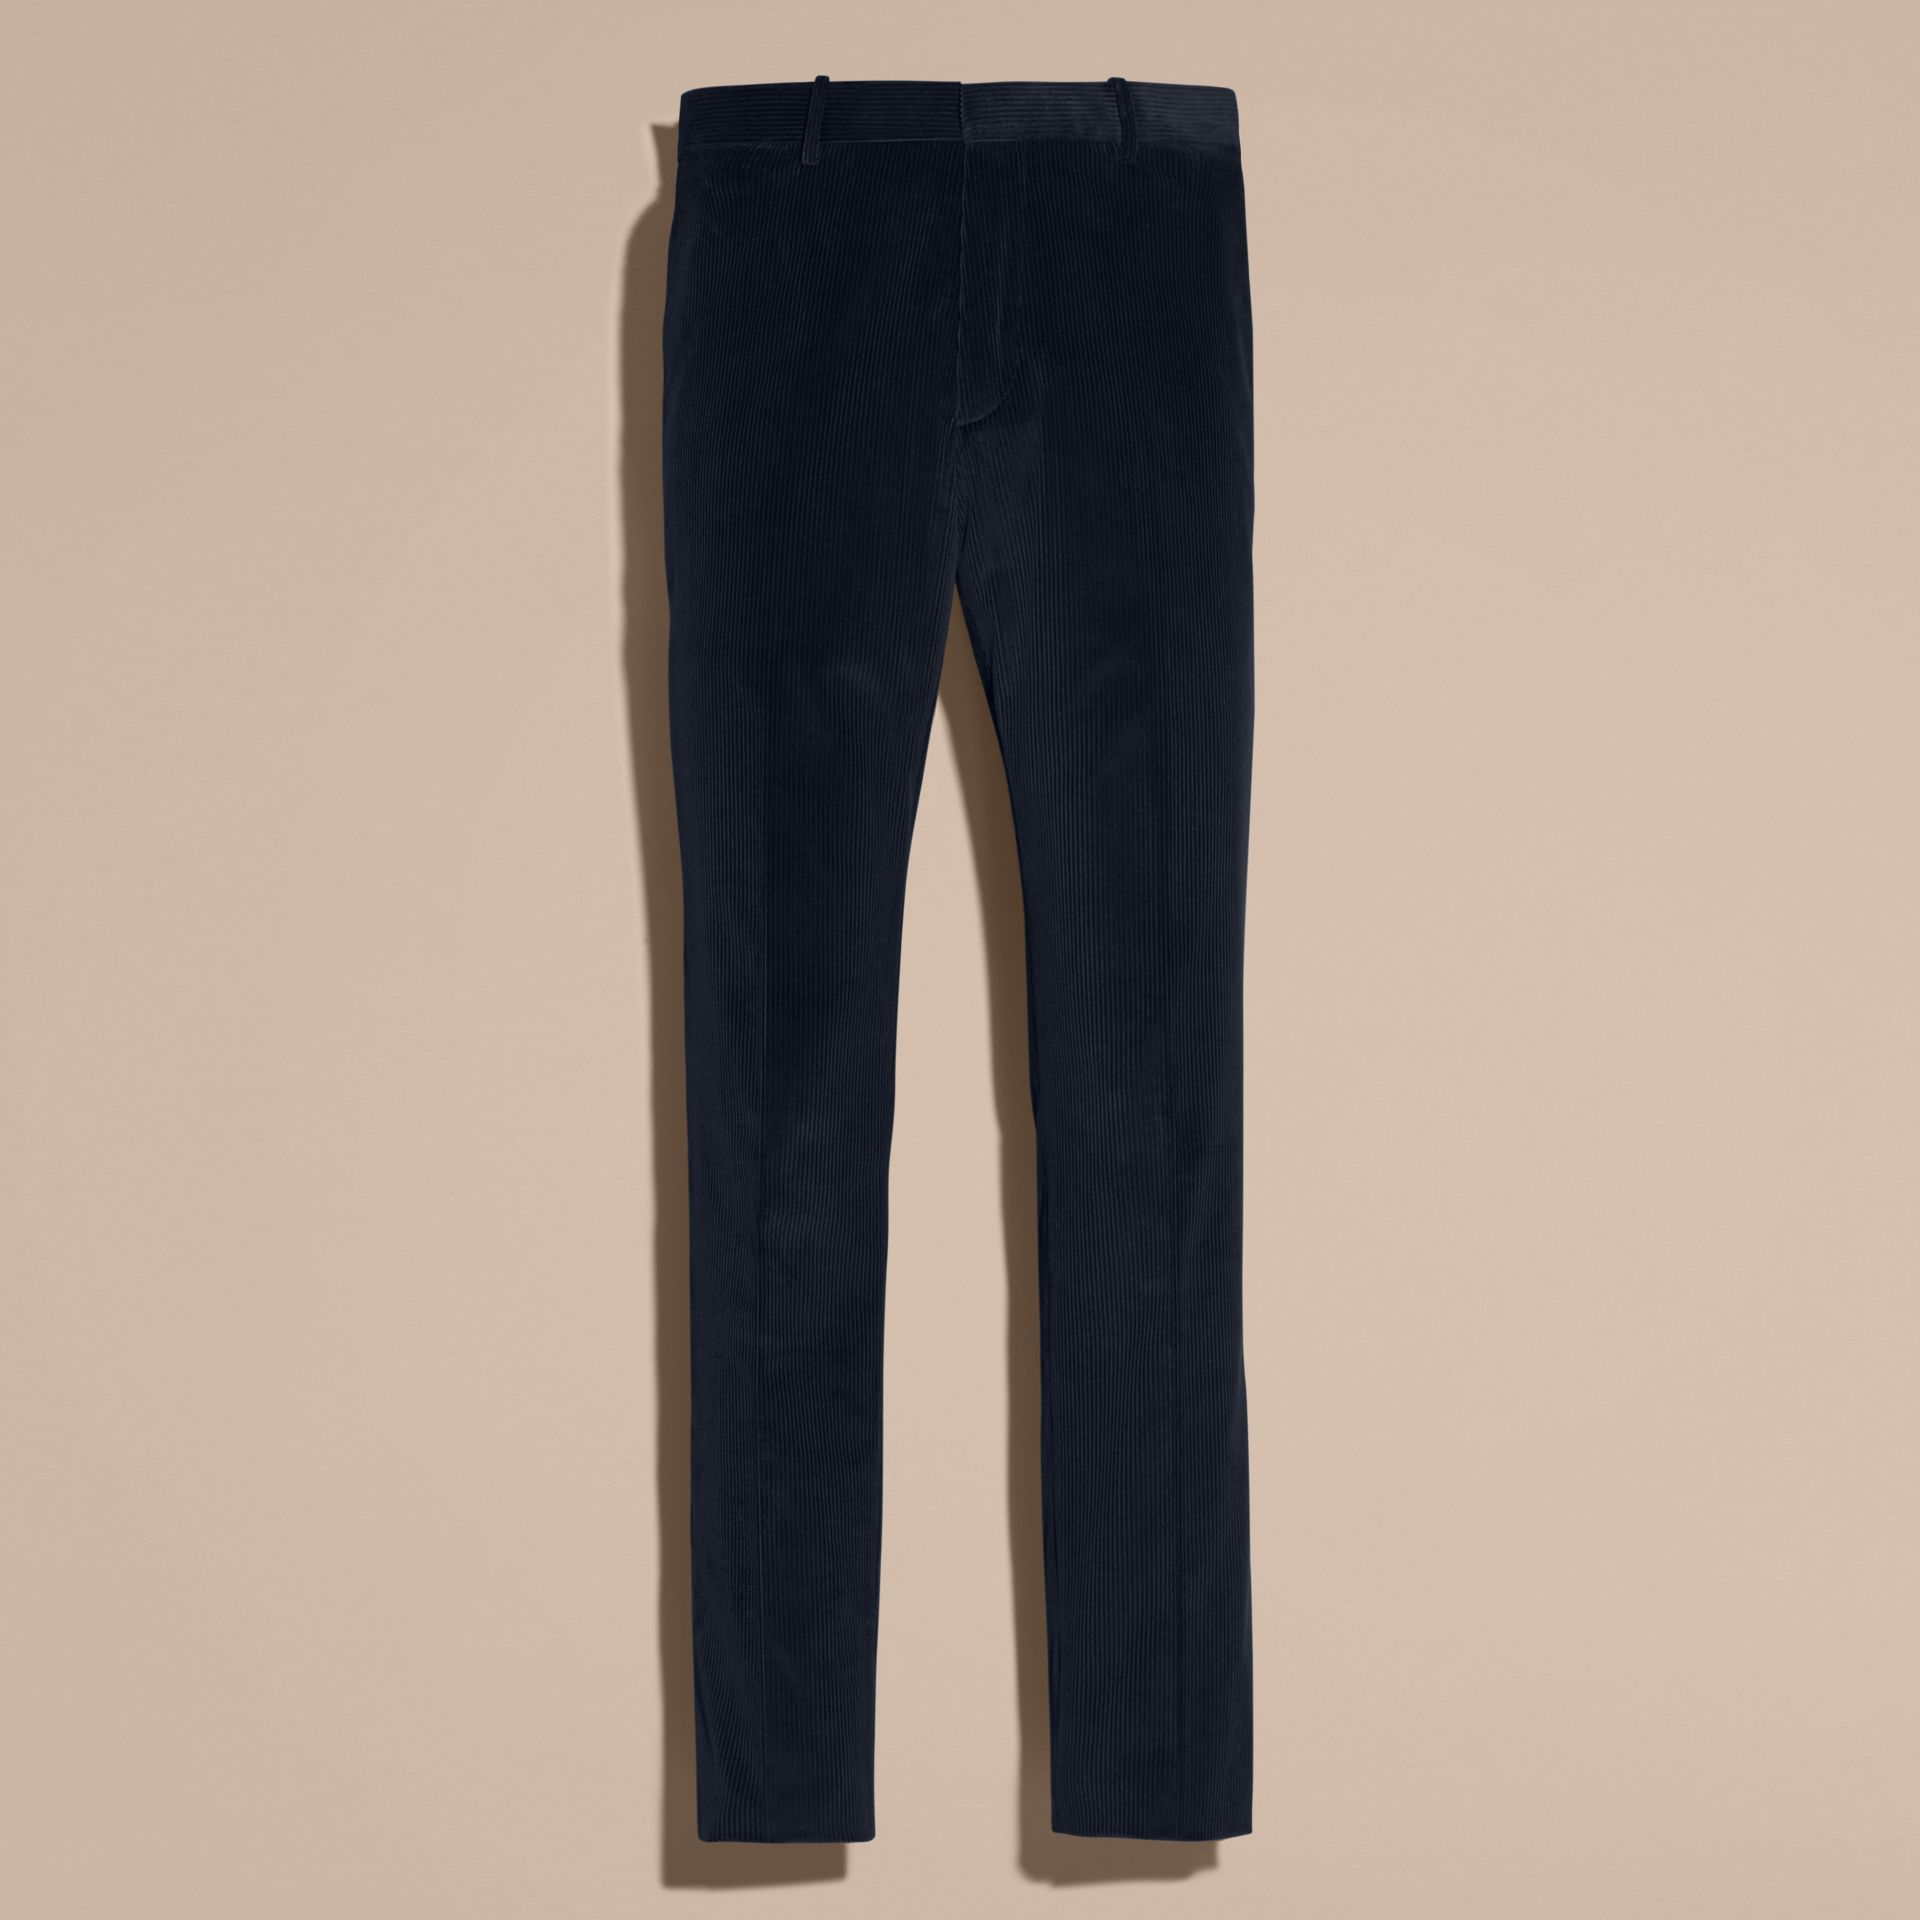 Navy Slim Fit Cotton Corduroy Trousers Navy - gallery image 4